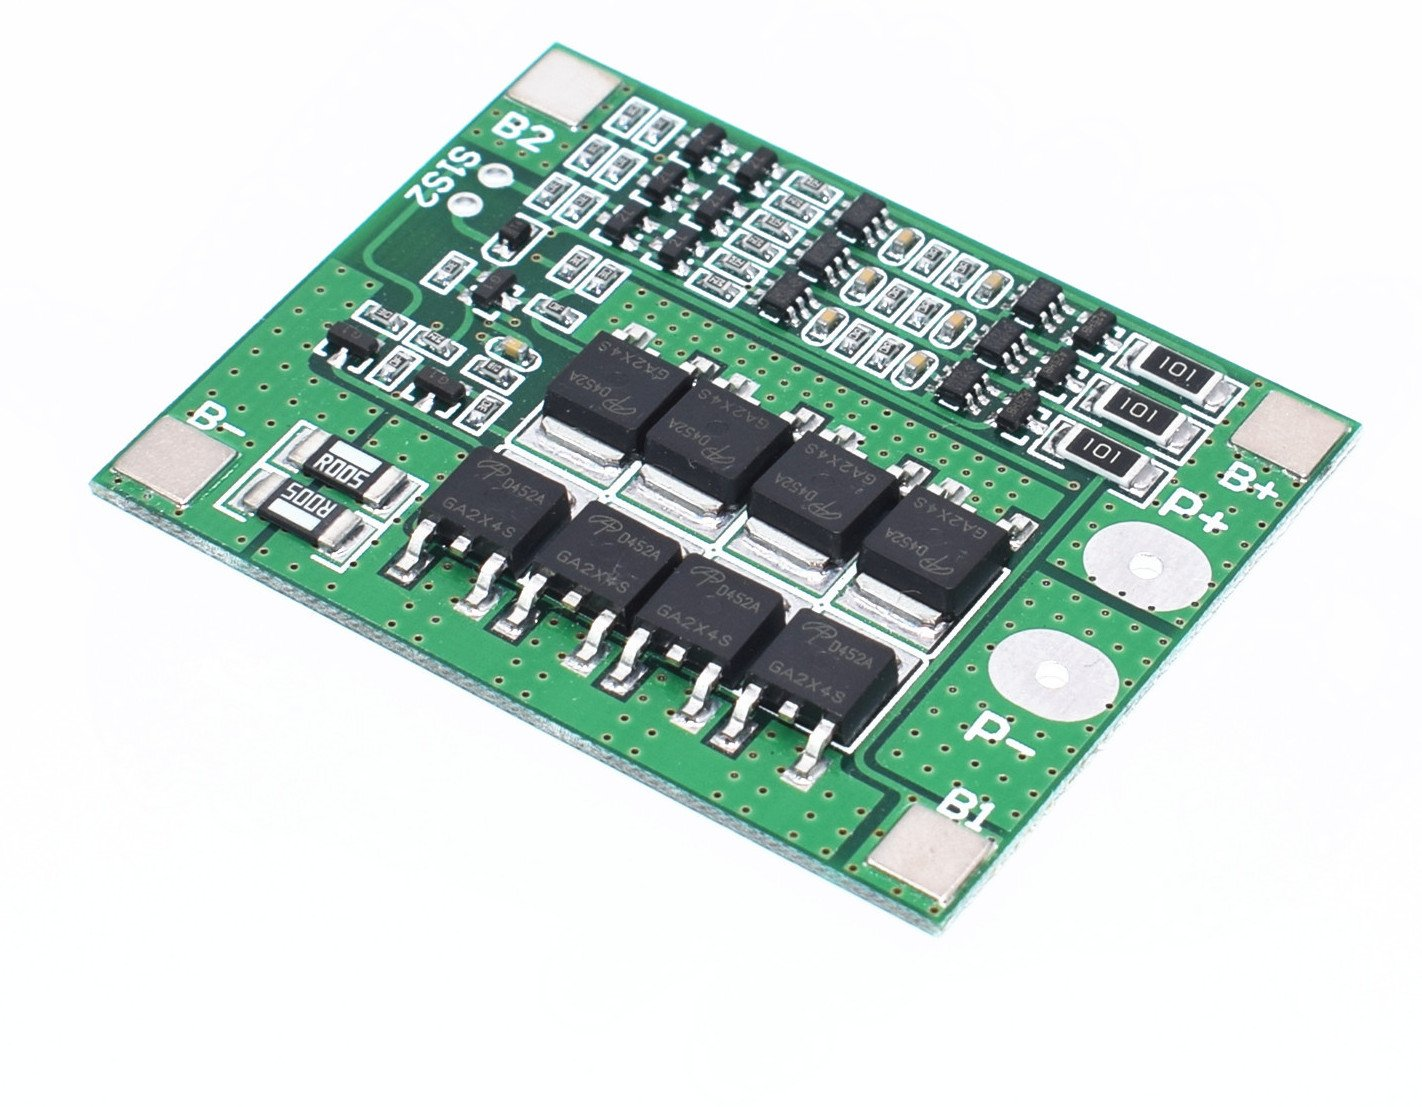 3s 12v 25a 18650 Lithium Battery Protection Board Indian Simple And Utility Charger Circuit Powersupply Hover To Zoom